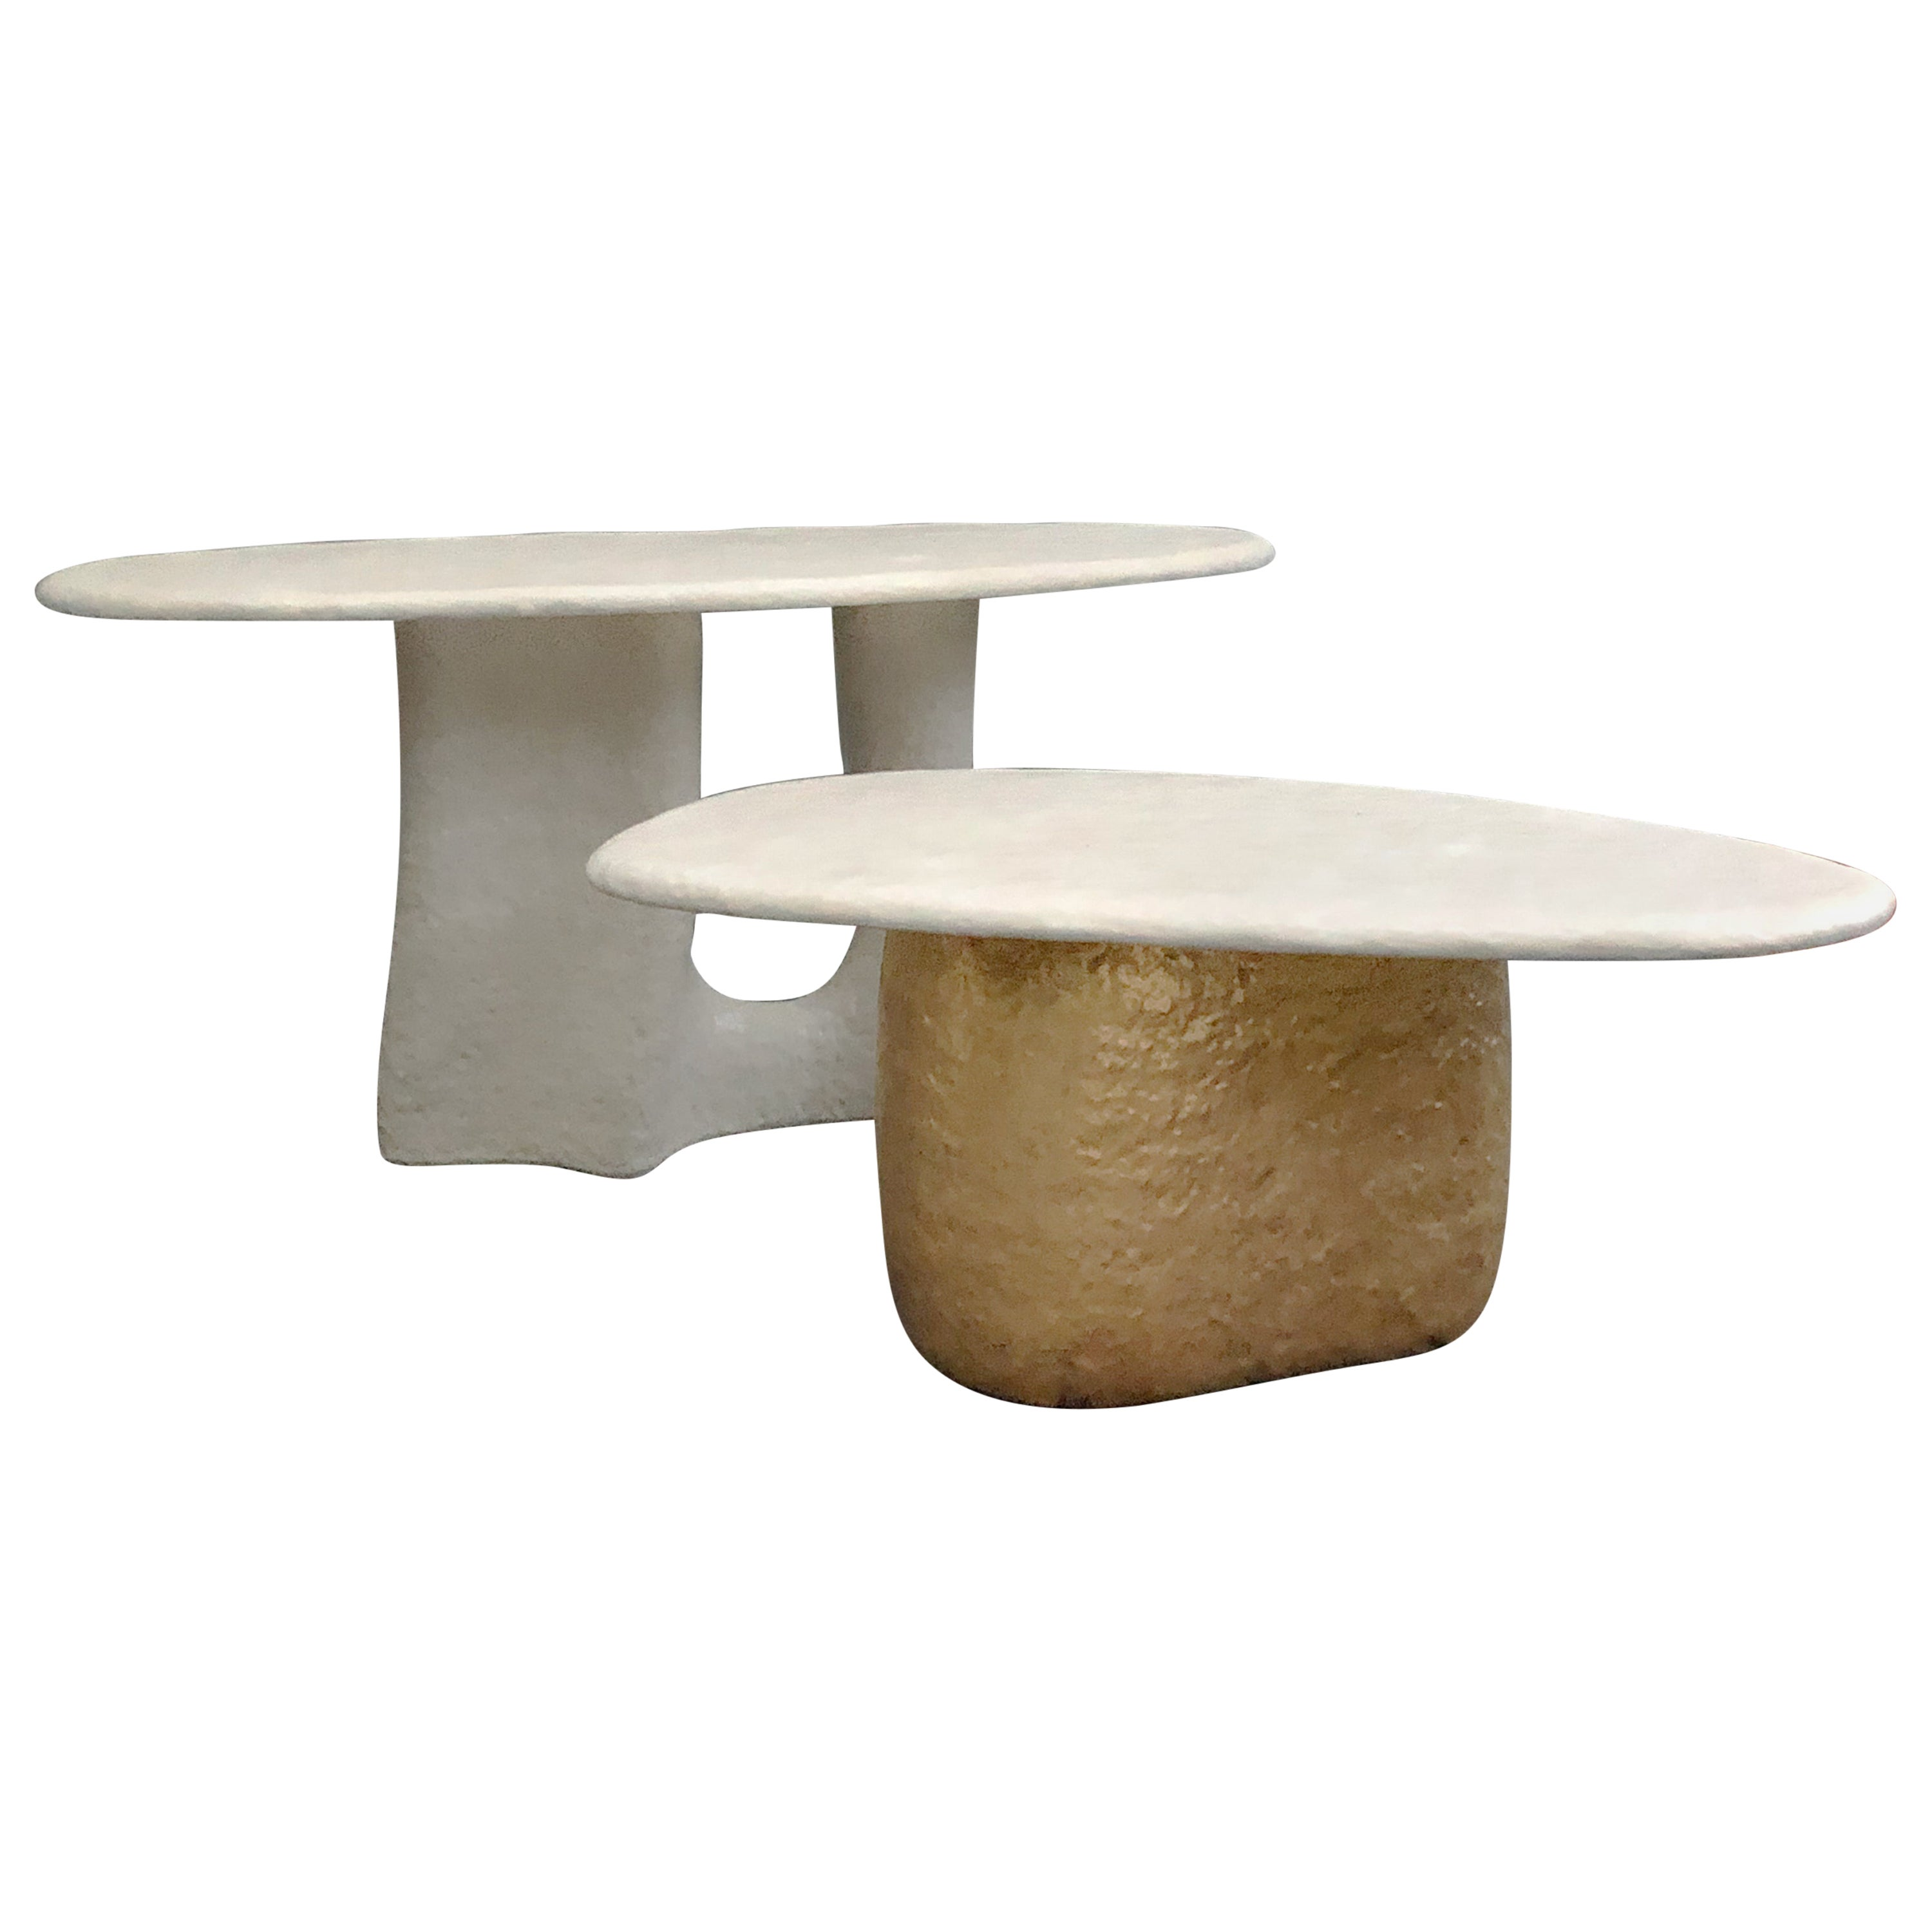 Big Table 'small' Contemporary Table in Ceramic by MYK Studio